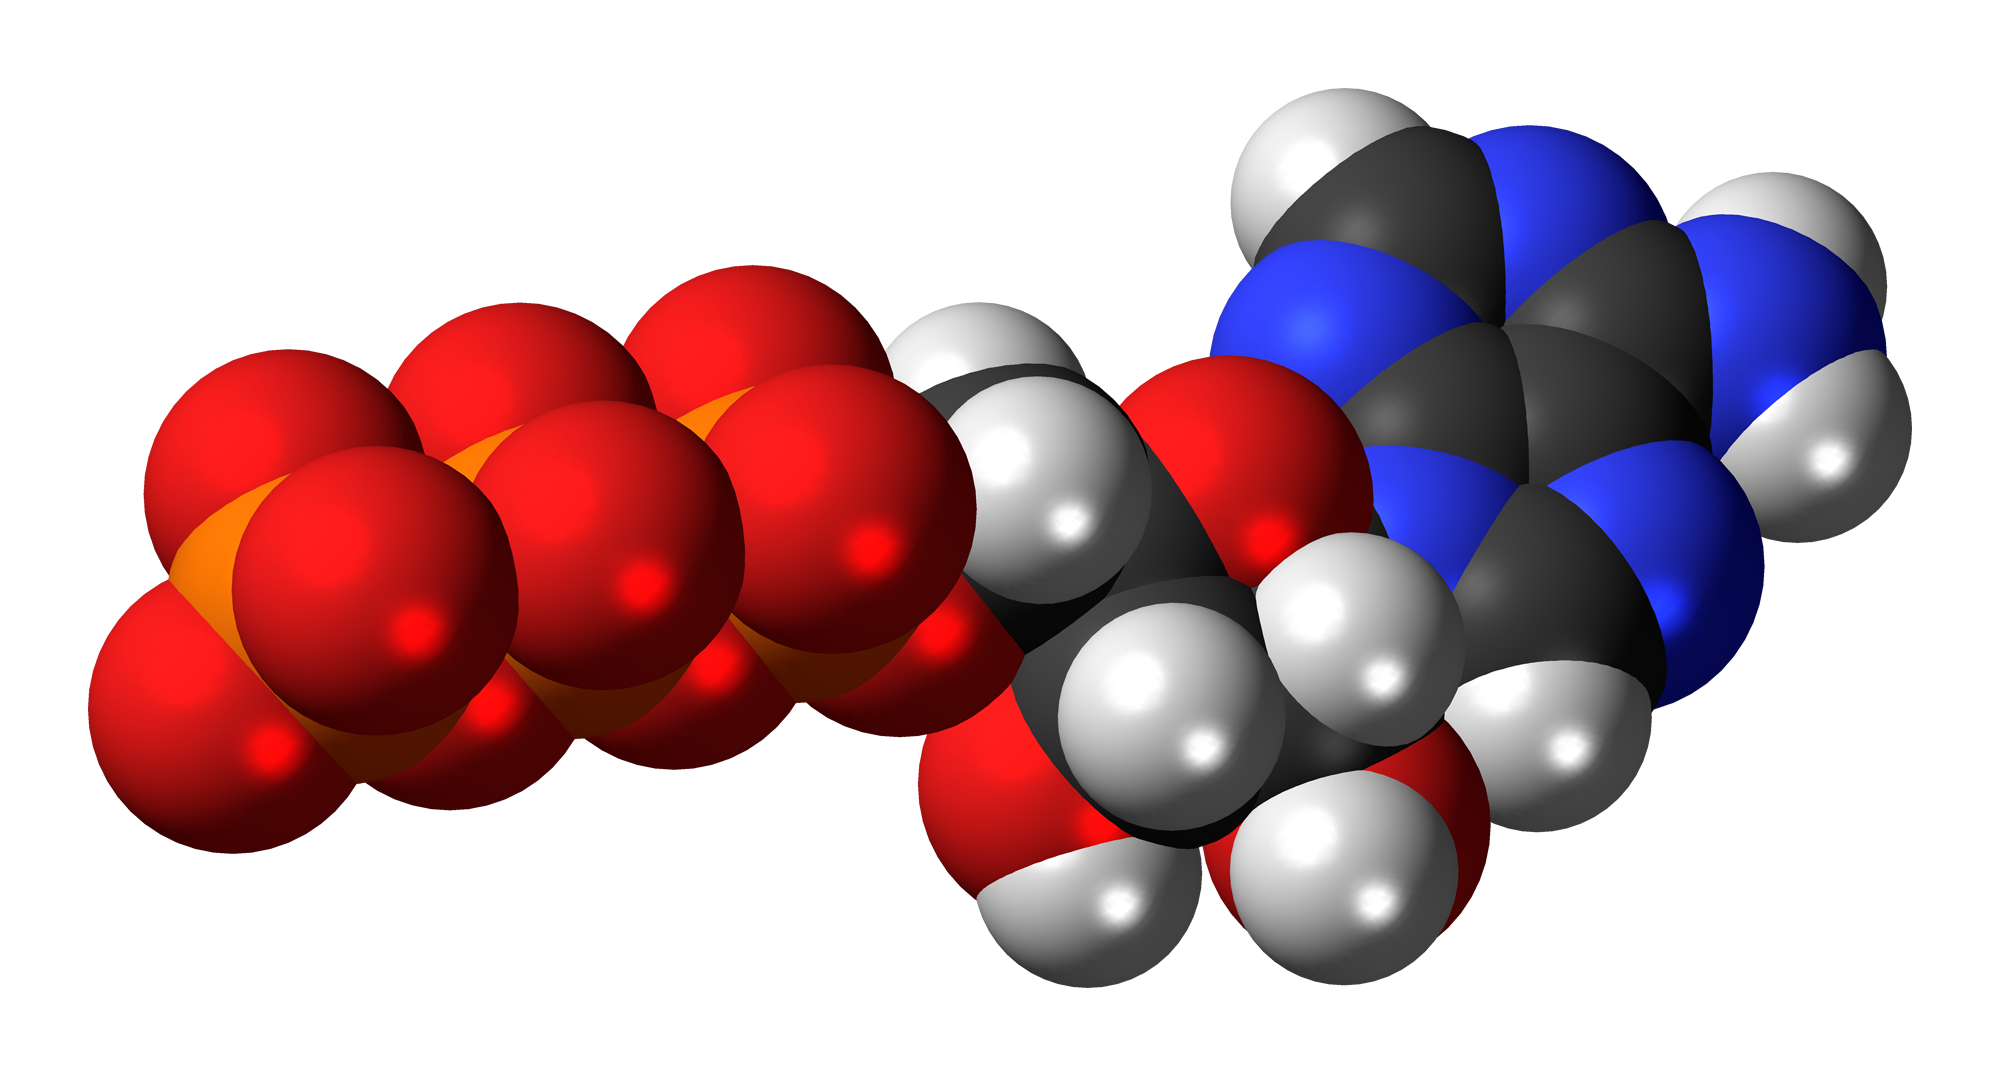 File:Adenosine-triphosphate-anion-3D-spacefill.png ...